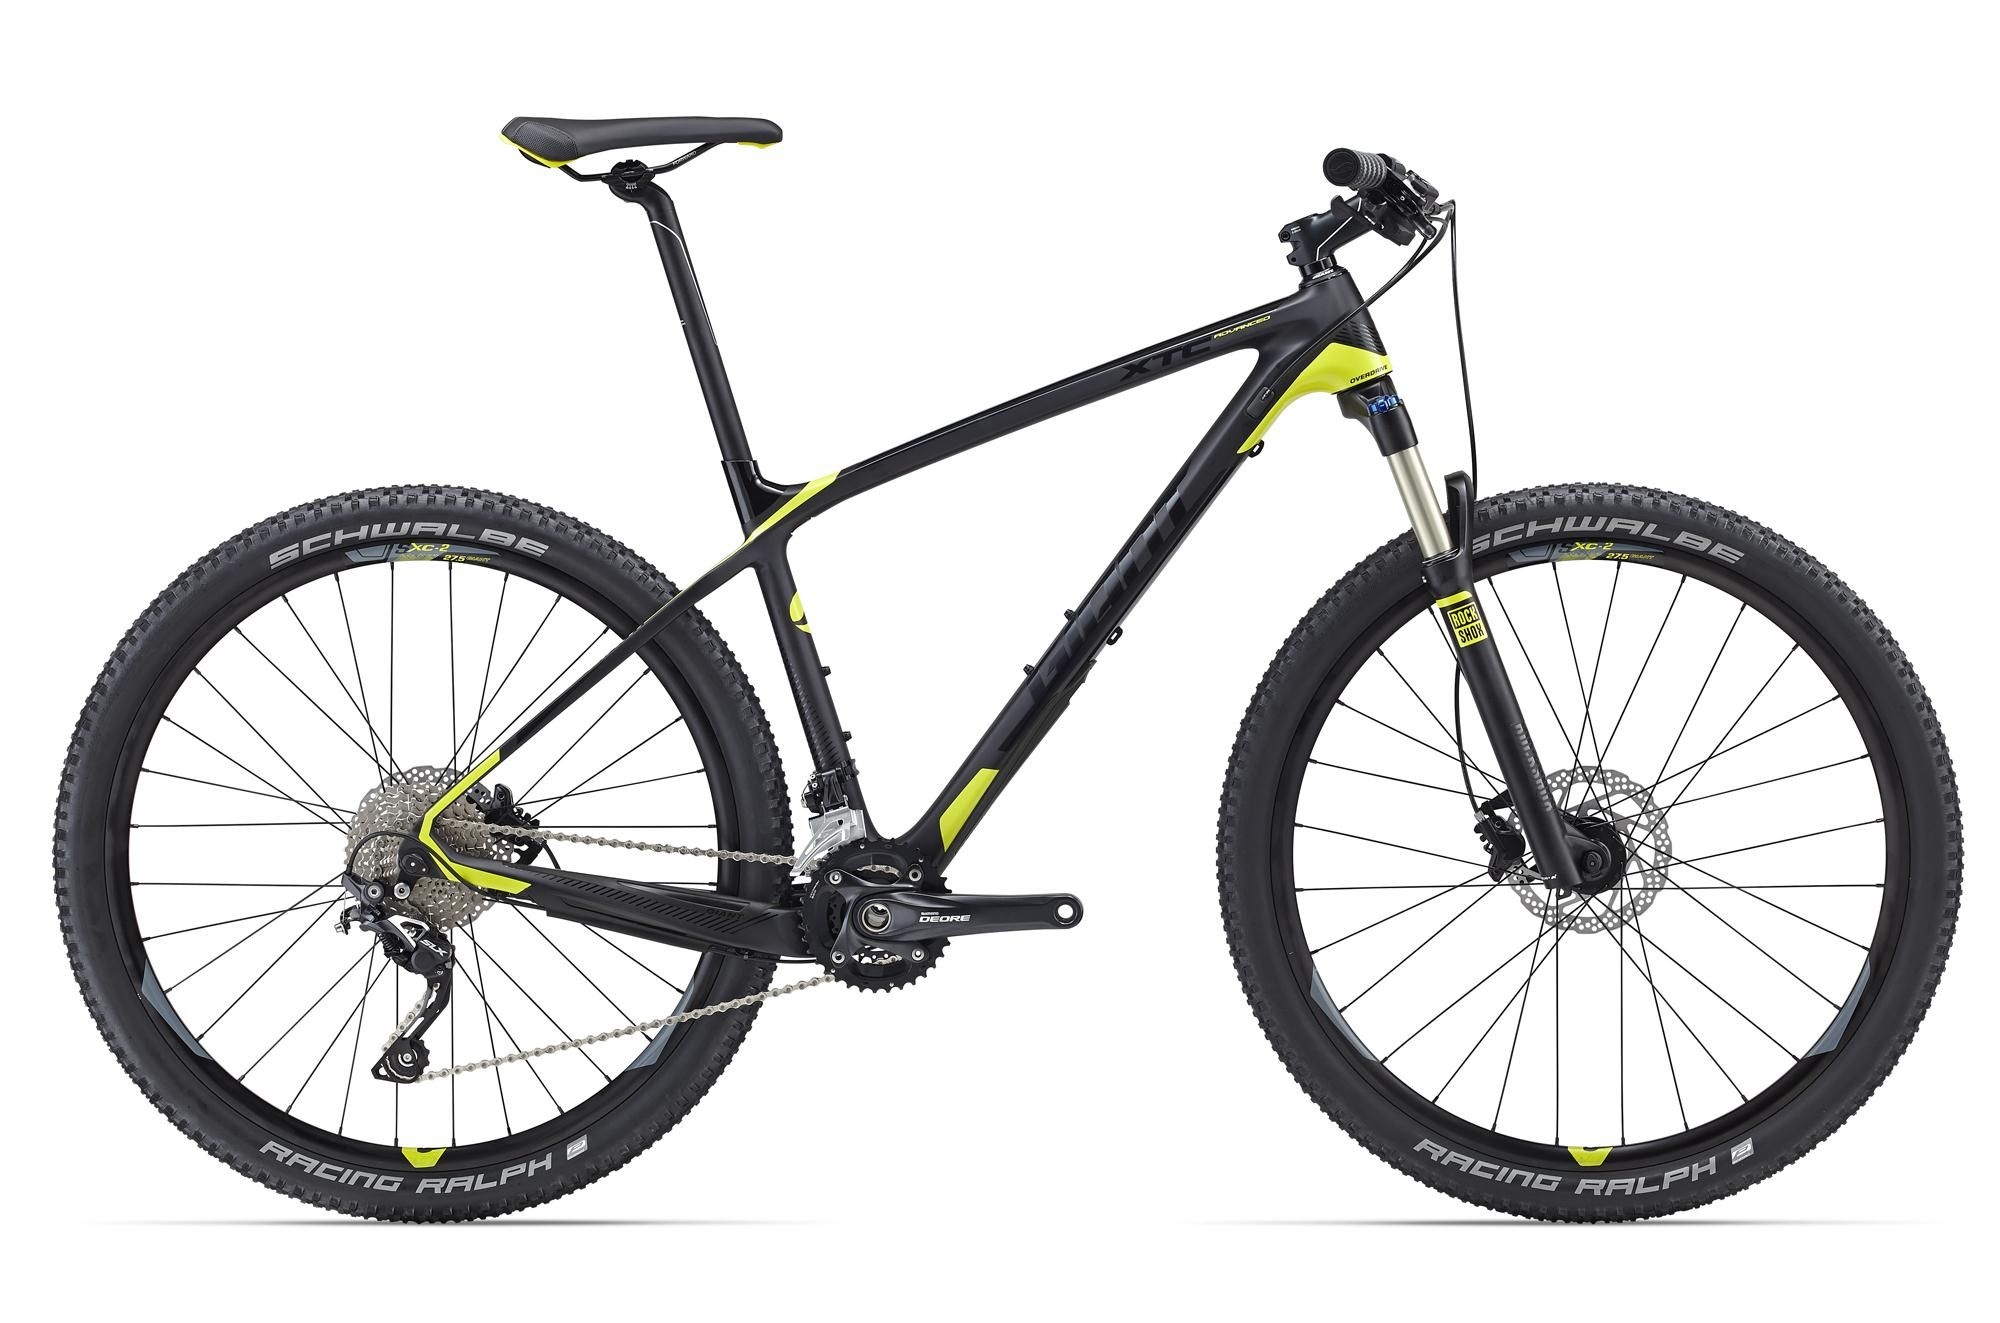 Велосипед Giant XtC Advanced 27.5 3 2016 велосипед giant trinity advanced pro 1 2016 page 8